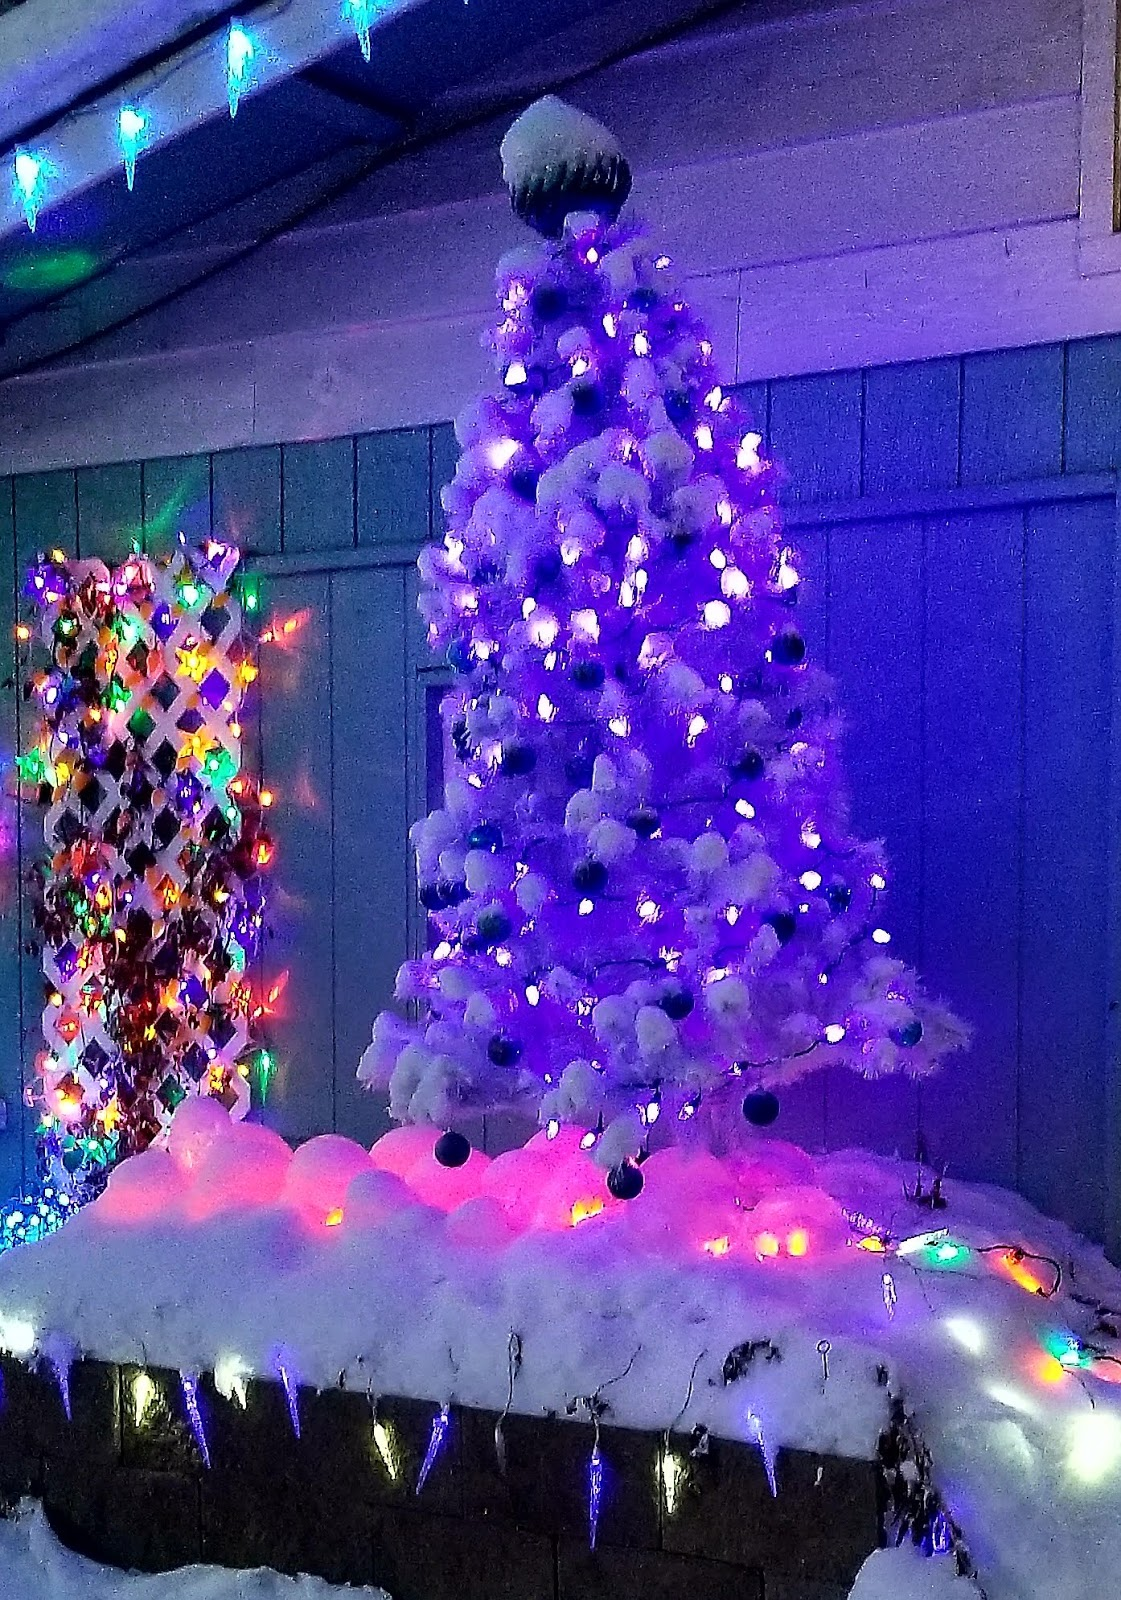 heres what in my raised bed now my own ice garden - When To Take Down Christmas Lights